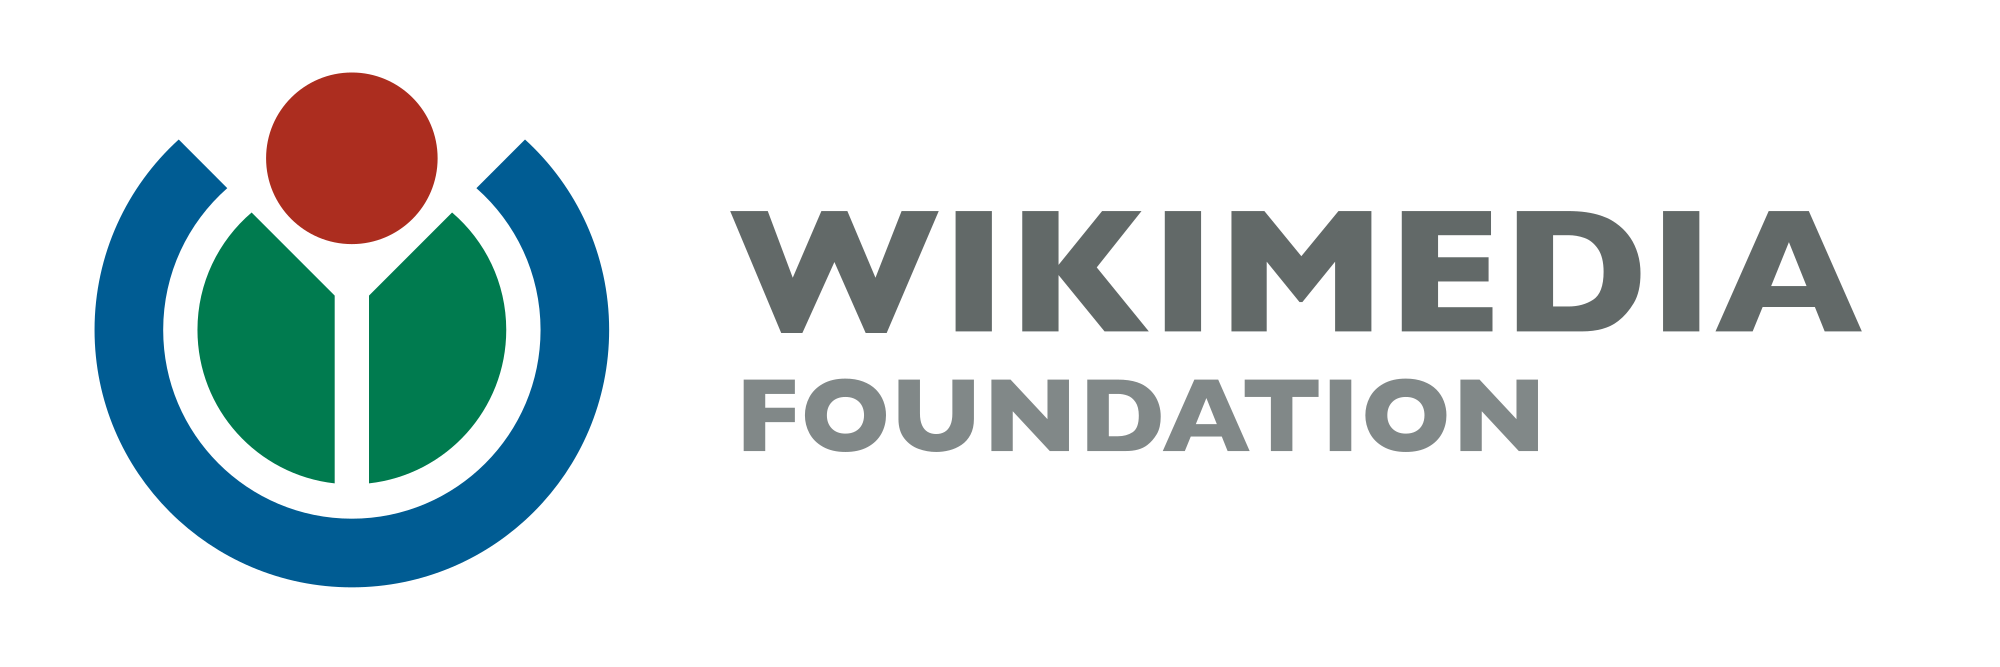 Wikimedia_Foundation.png